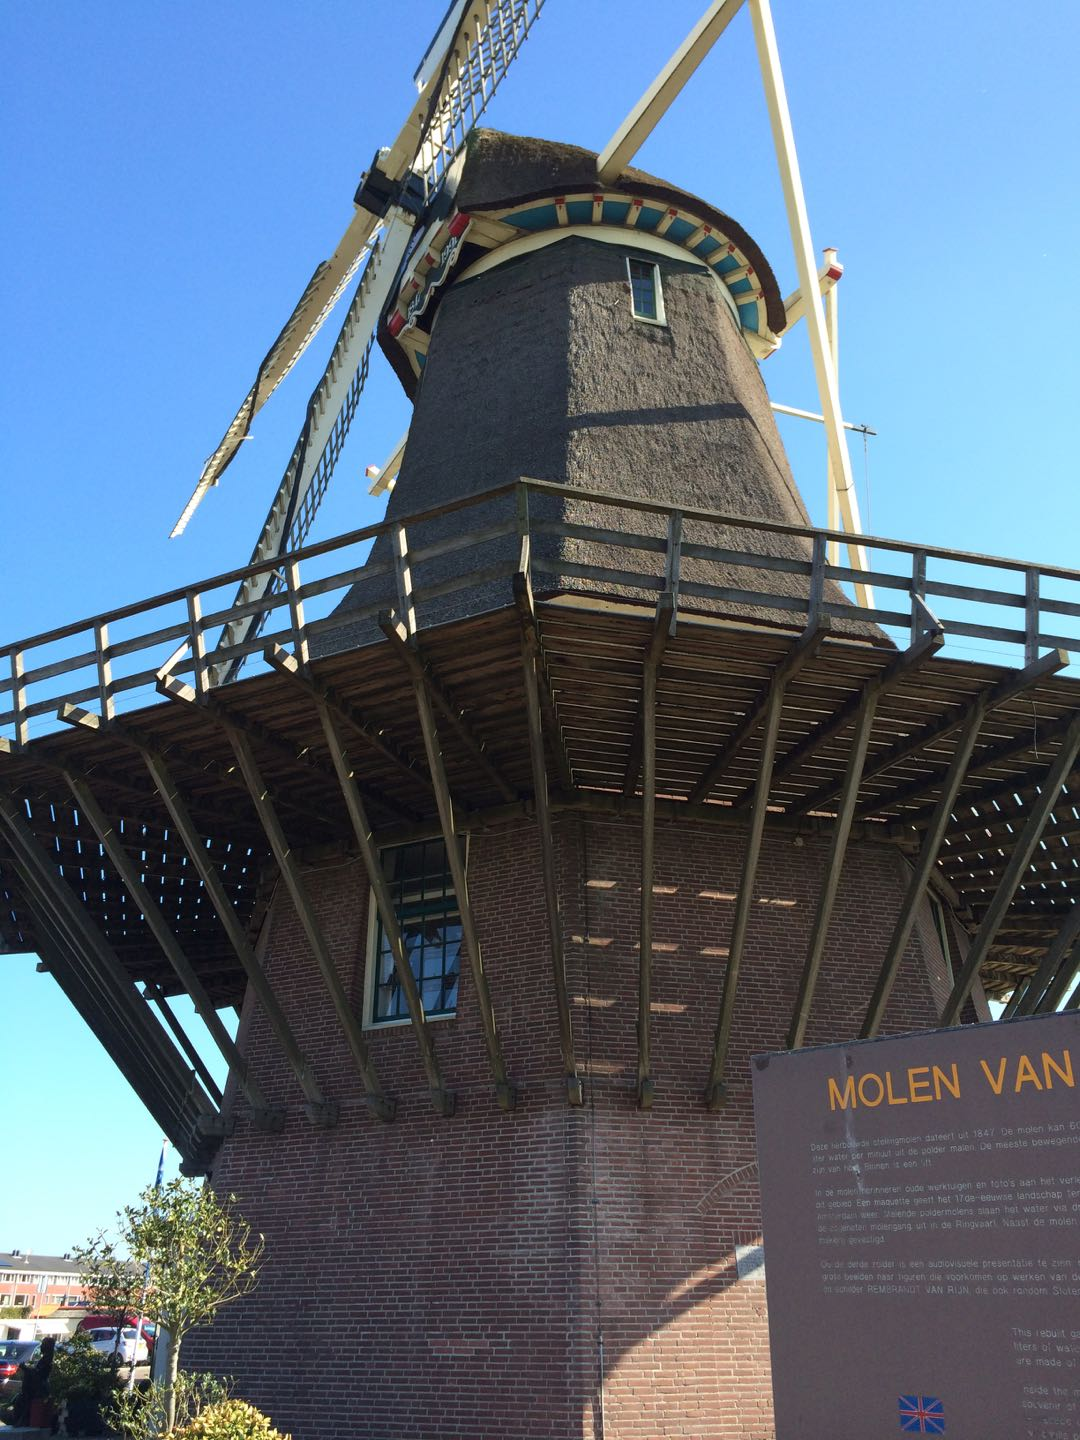 The Sloten Windmill can pump more than 60,000 gallons of water a minute.